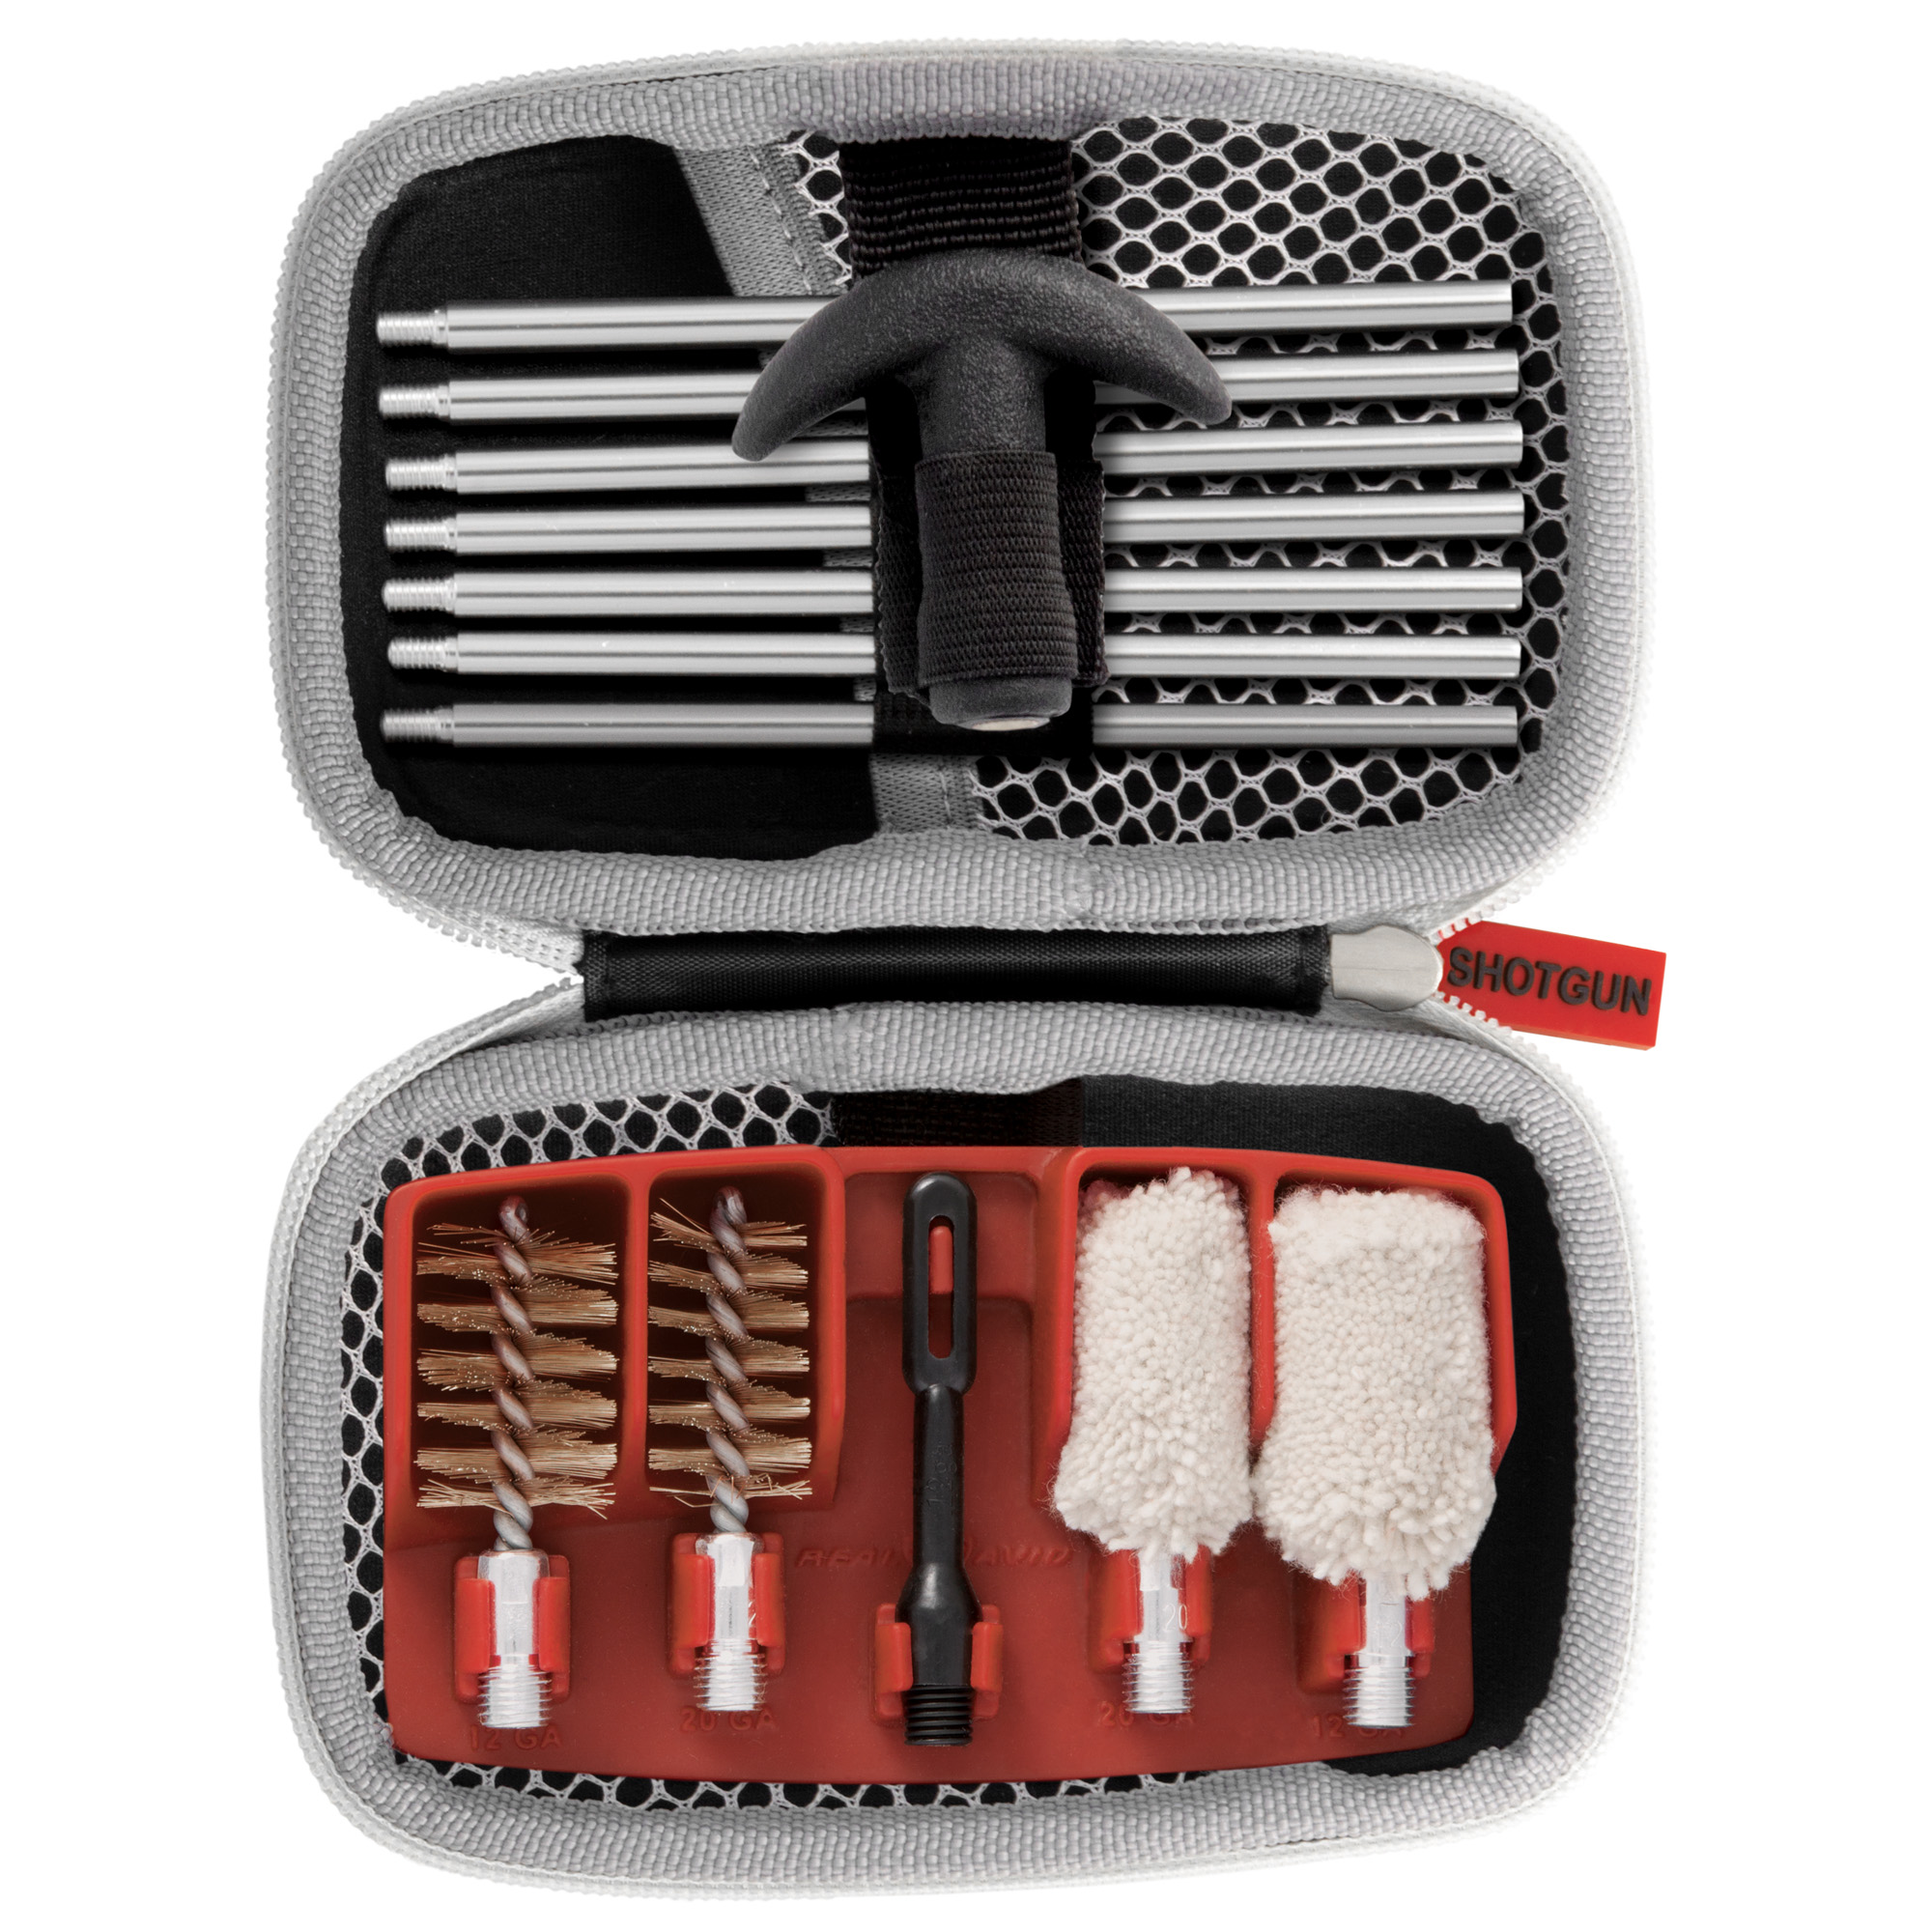 "The Gun Boss Shotgun Cleaning kit is a complete system to keep your gun clean and firing accurately. Aluminum connectors"" nylon slotted tip and phosphor bronze brushes protect bores. The Gun Boss Shotgun Cleaning kit is a complete cleaning system that easily travels with you. Fits 20 ga. & 12 ga. shotguns"